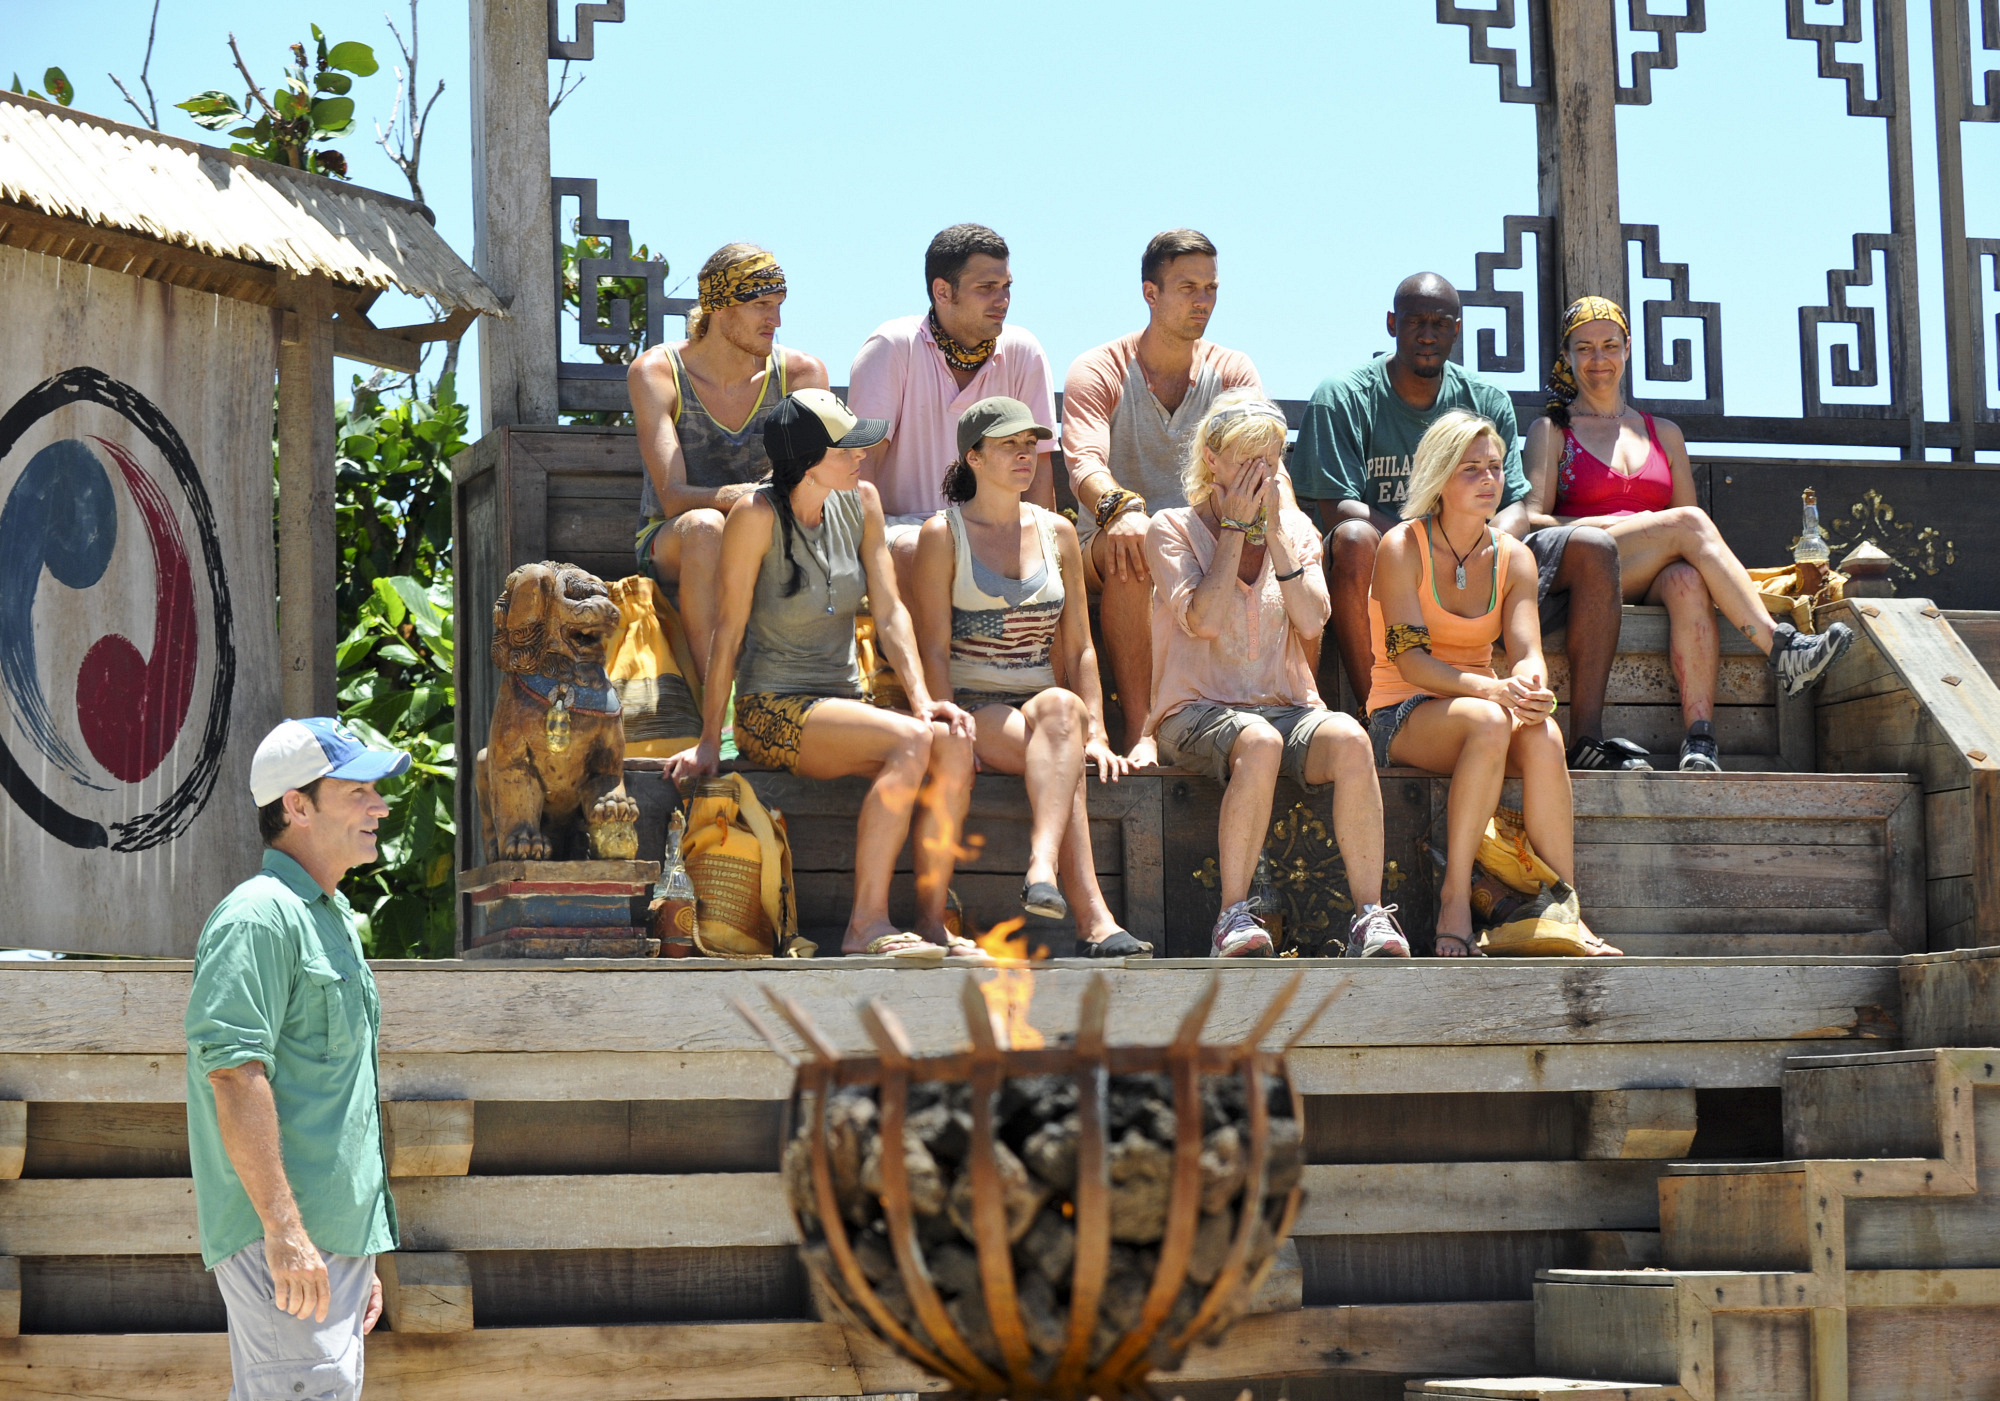 Watching the First Redemption Island Challenge